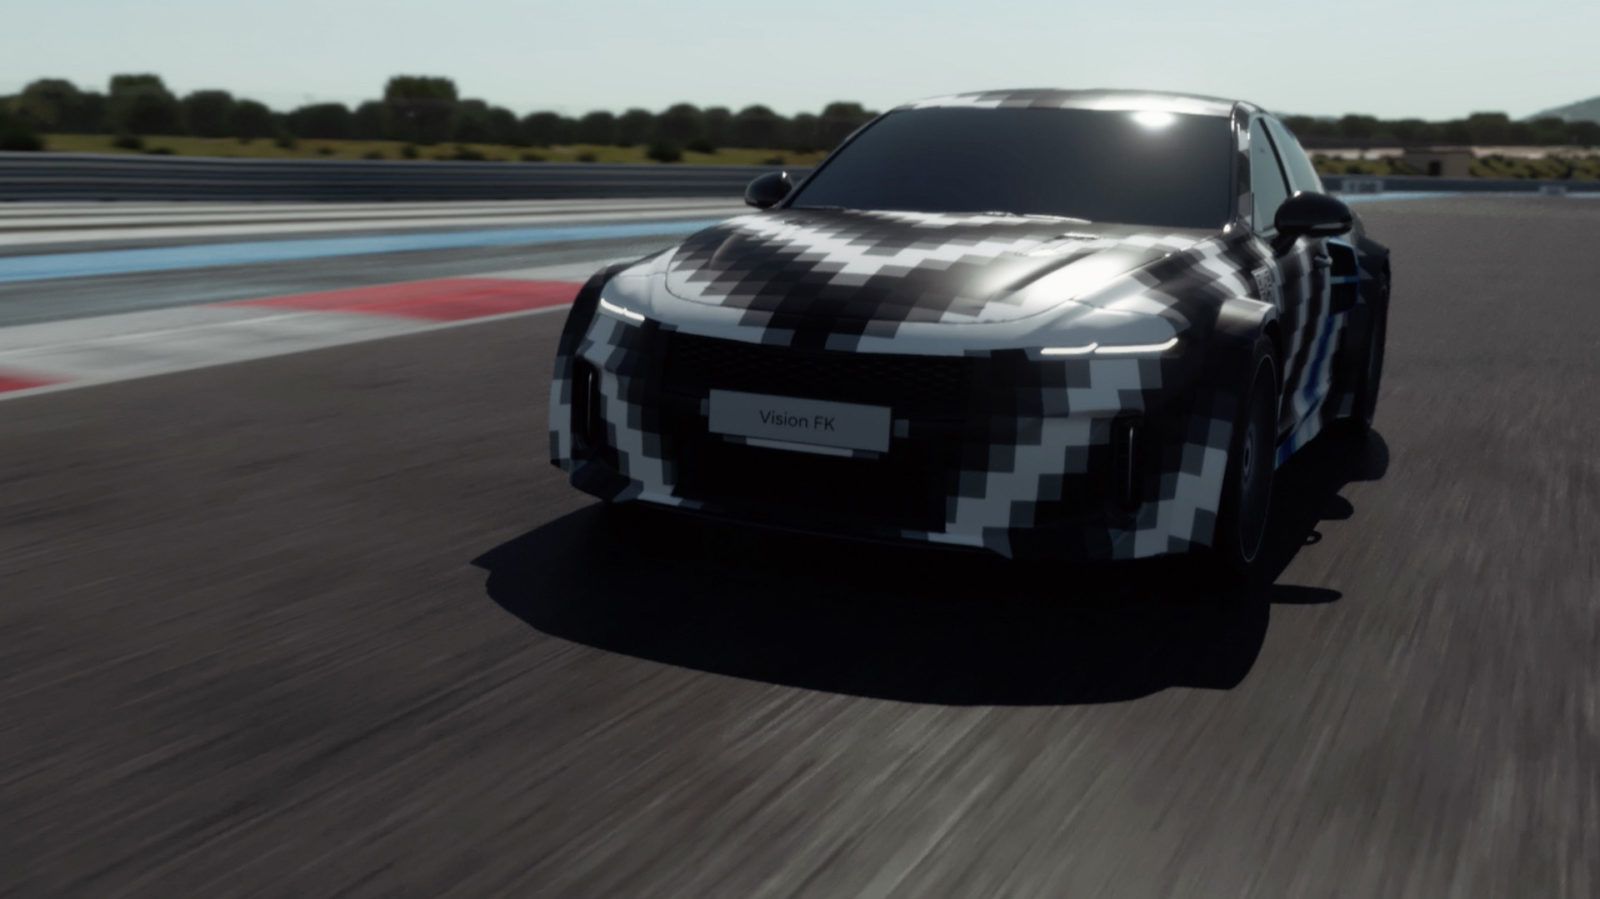 hyundai-reveals-fuel-cell-sports-car-concept-developed-with-rimac